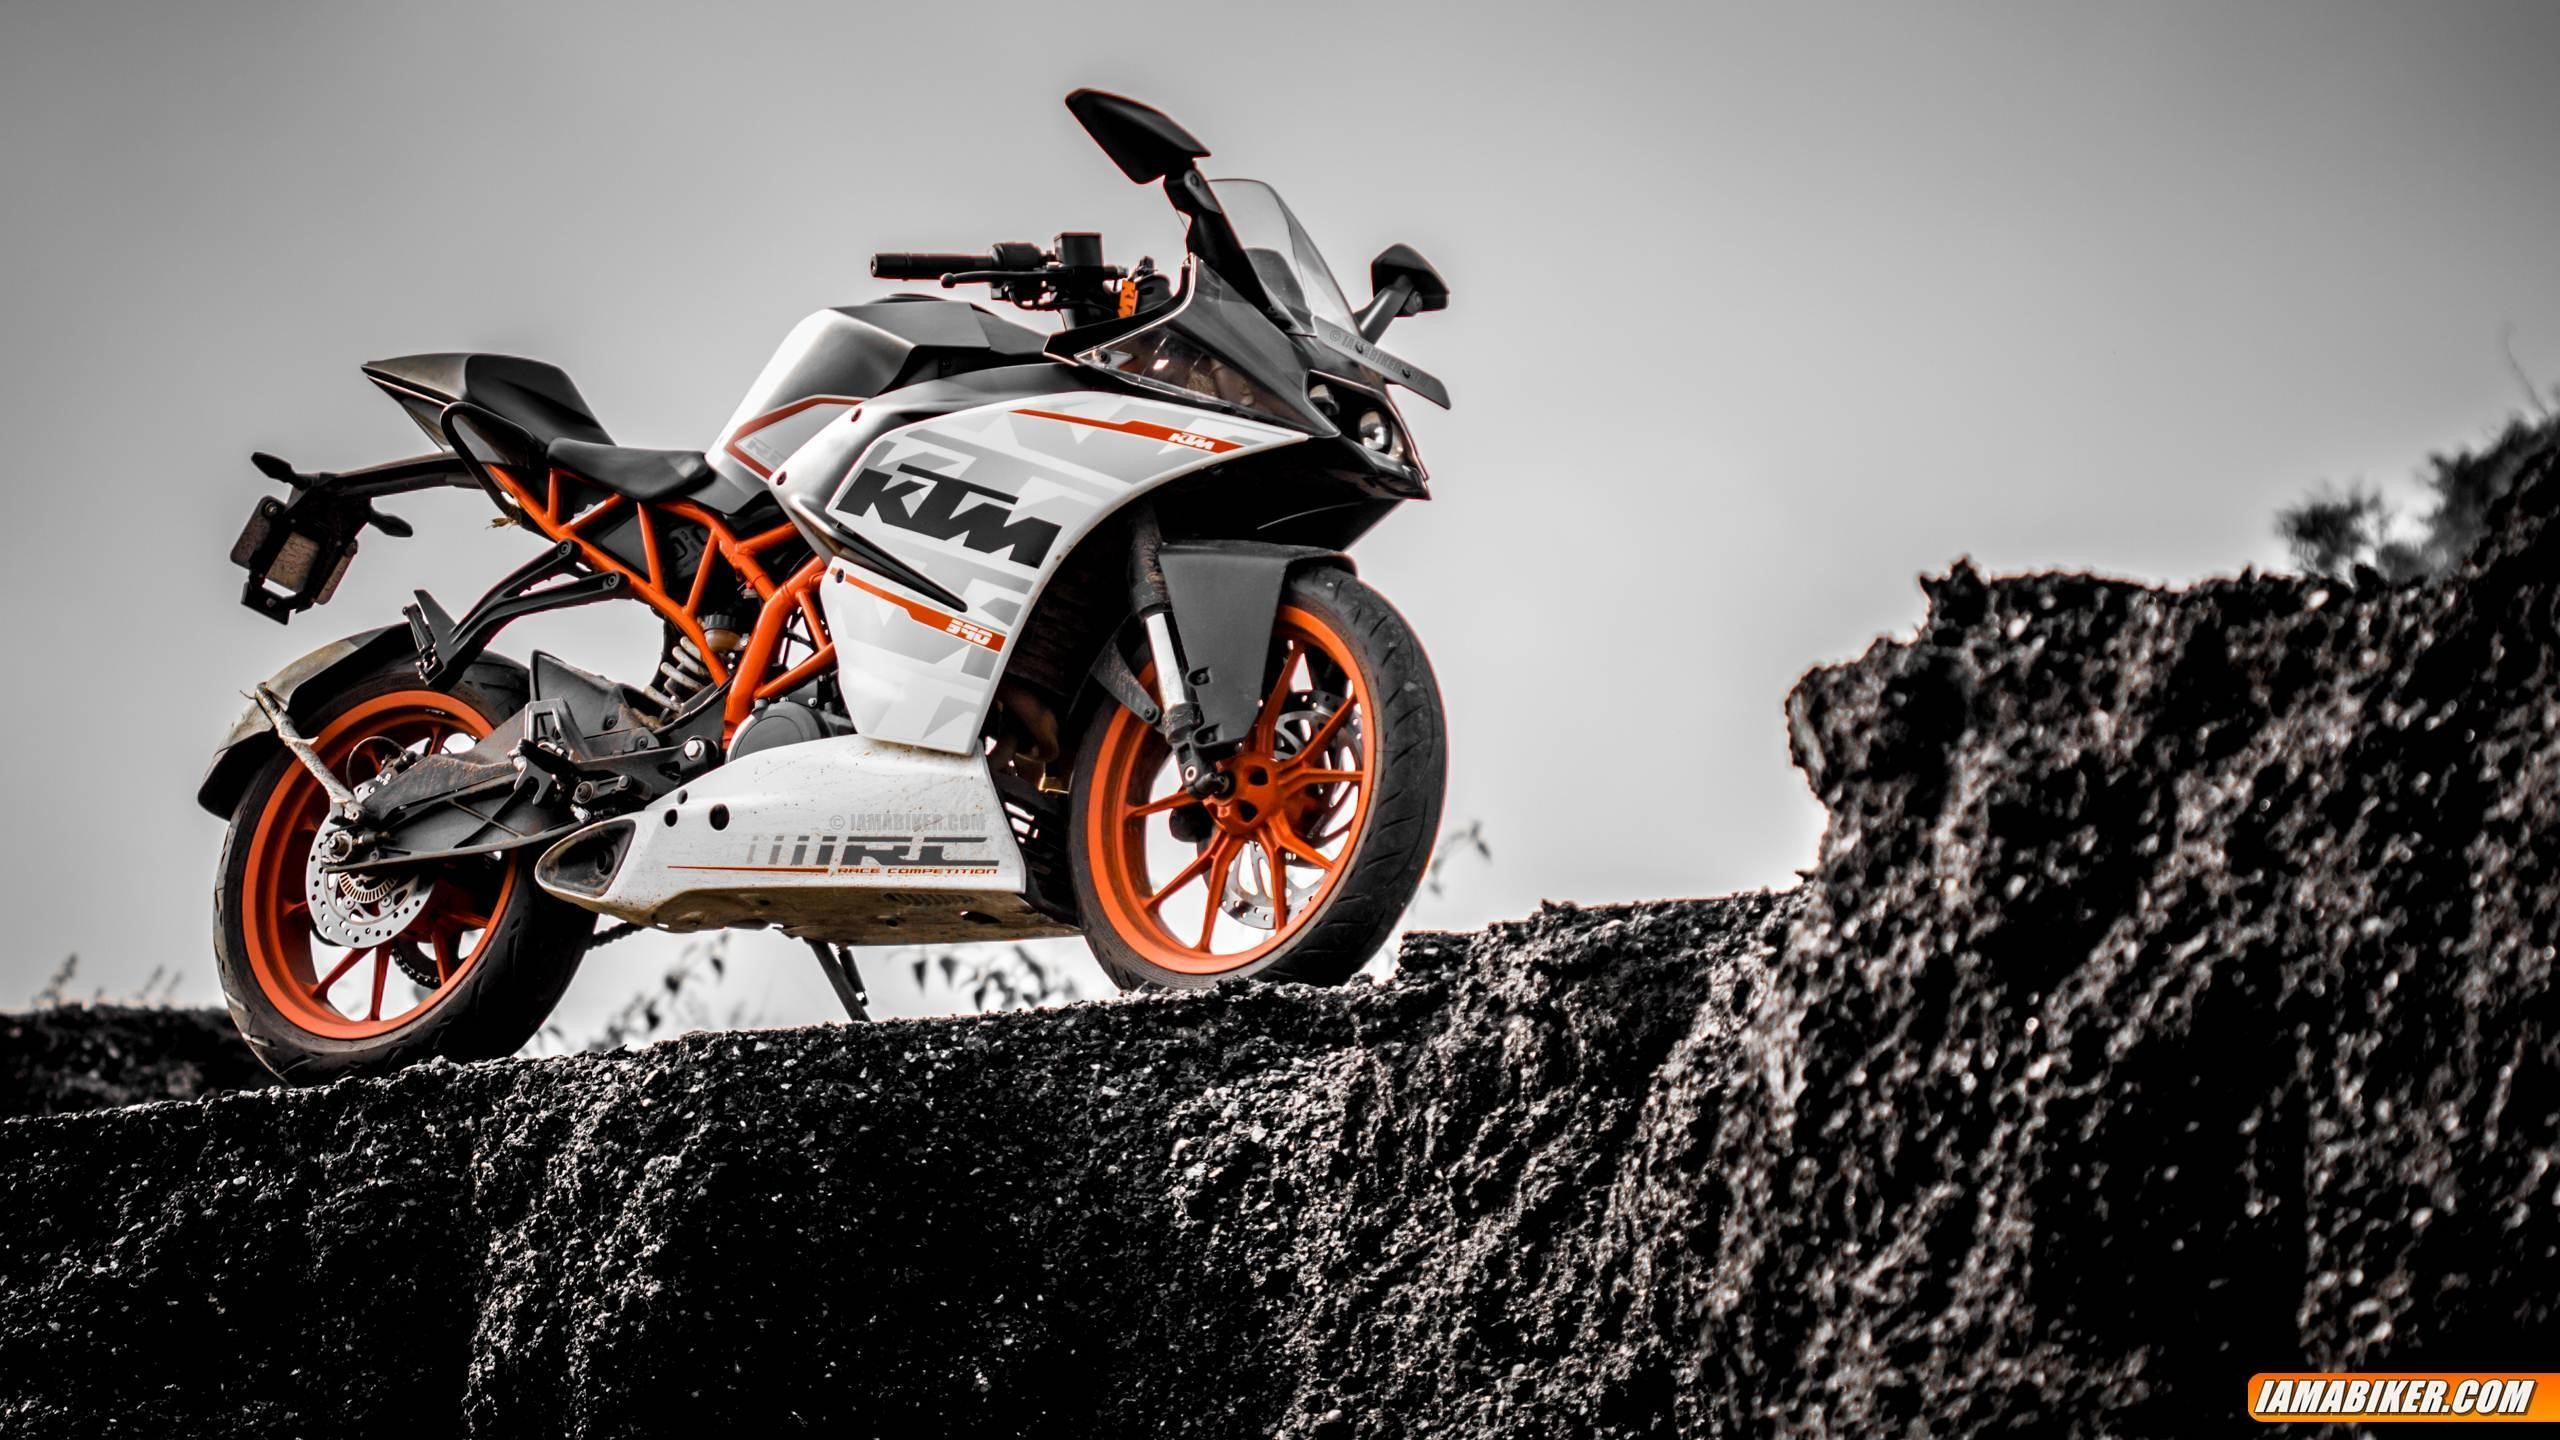 2560x1440 KTM RC 390 Wallpapers